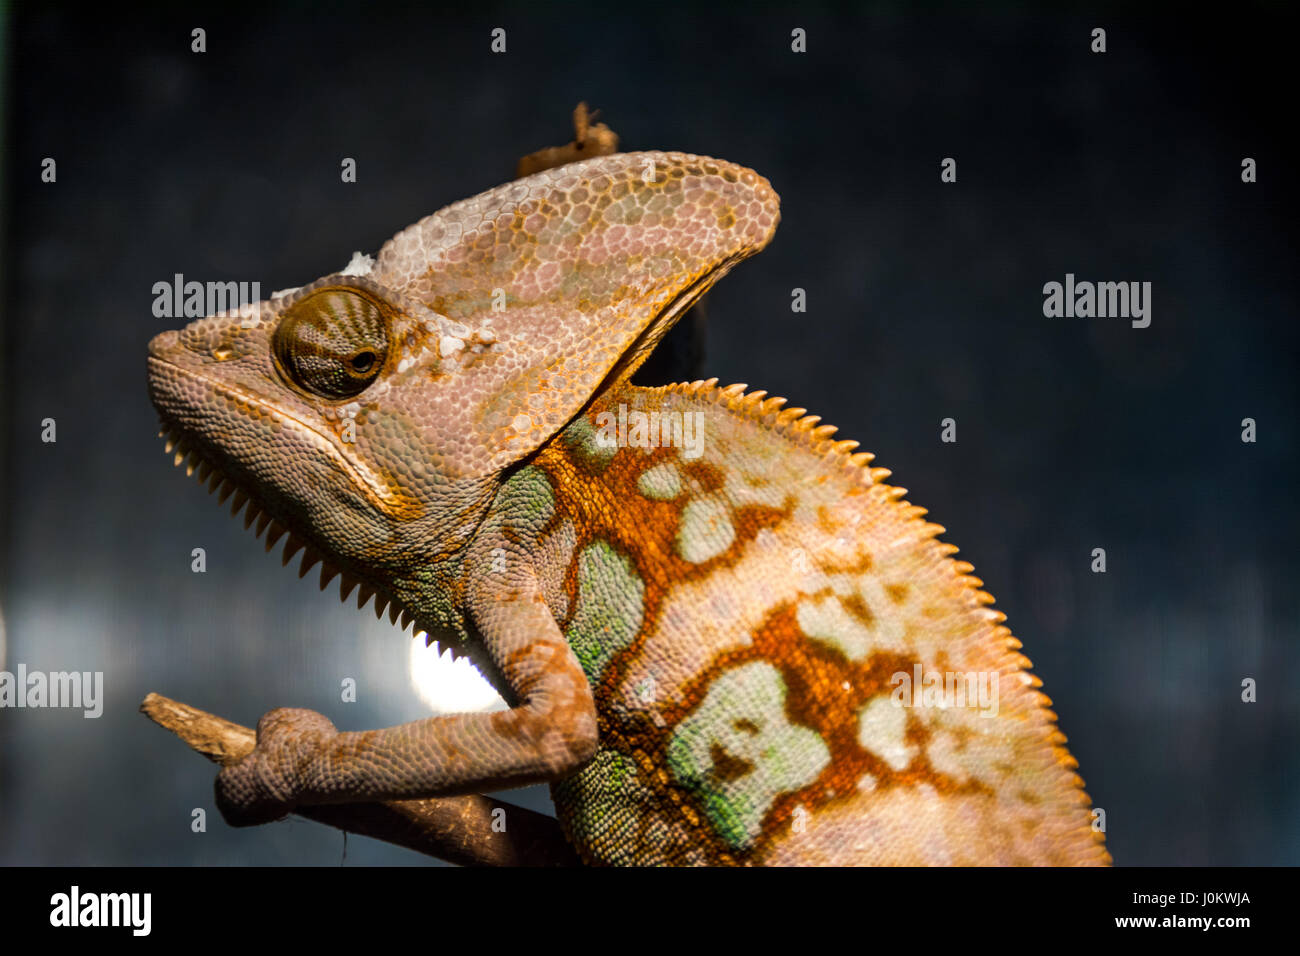 chameleon portrait that looks very unhappy - Stock Image